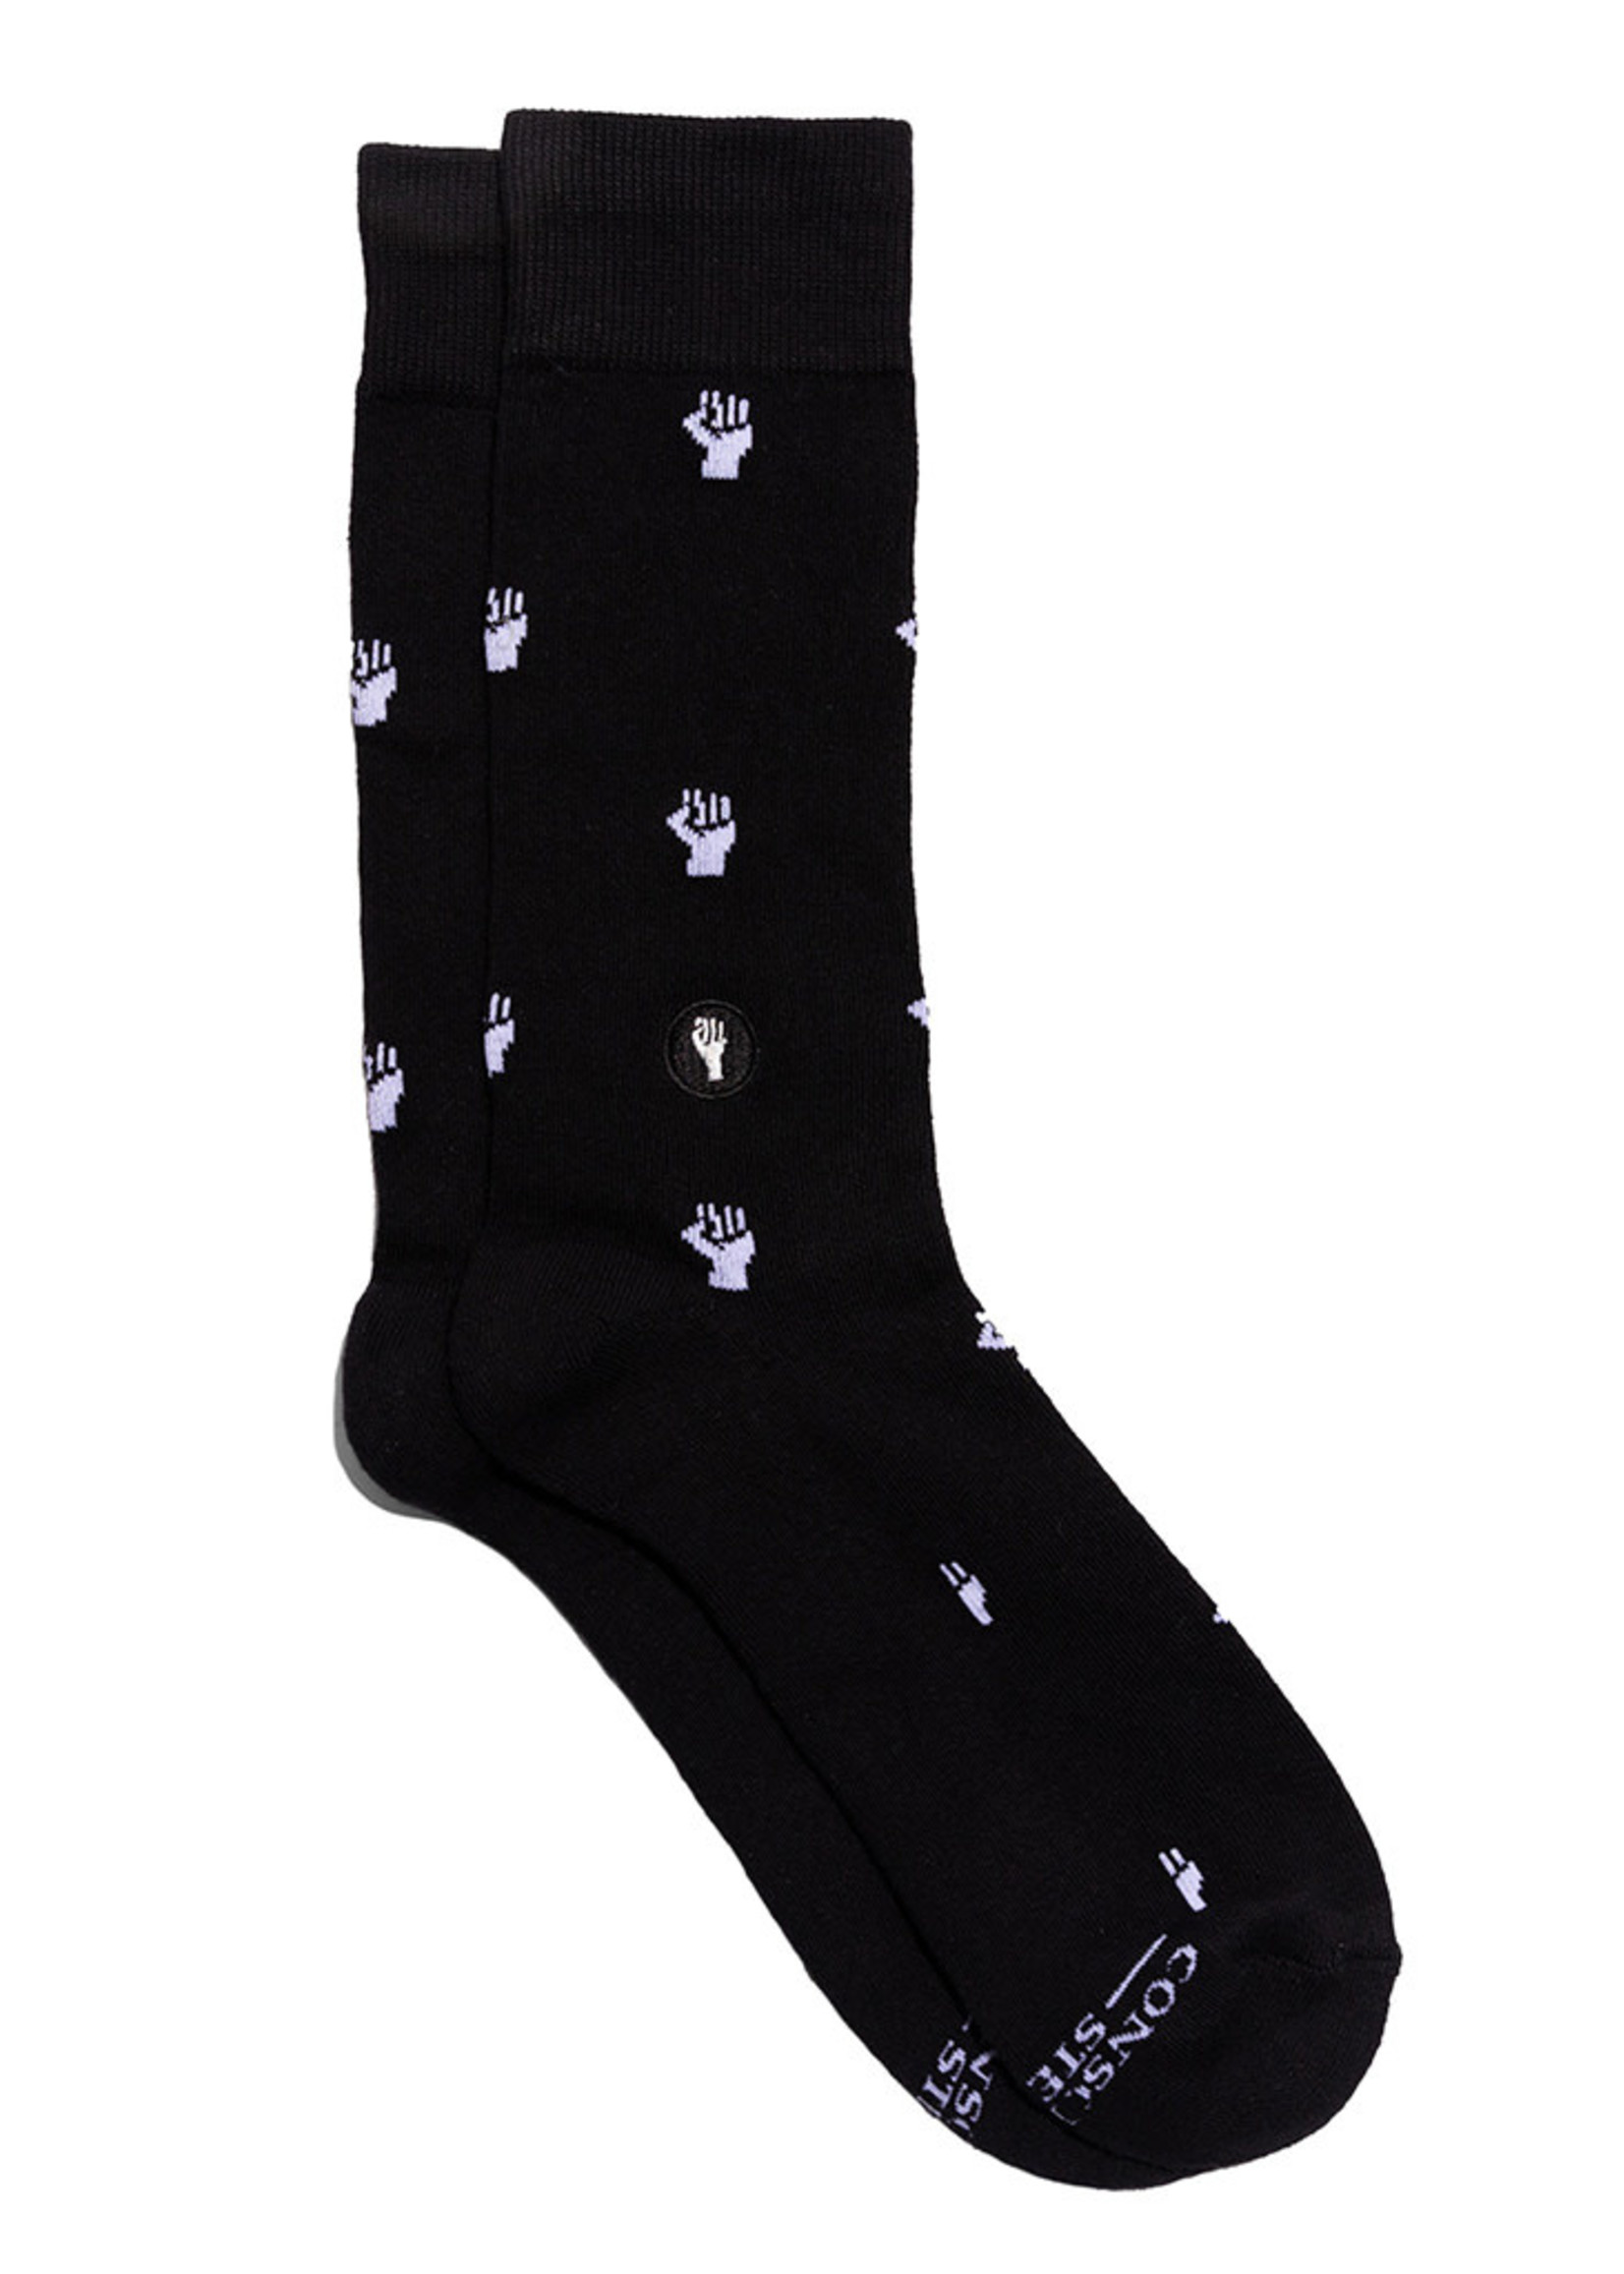 Socks That Fight For Equality (women's)